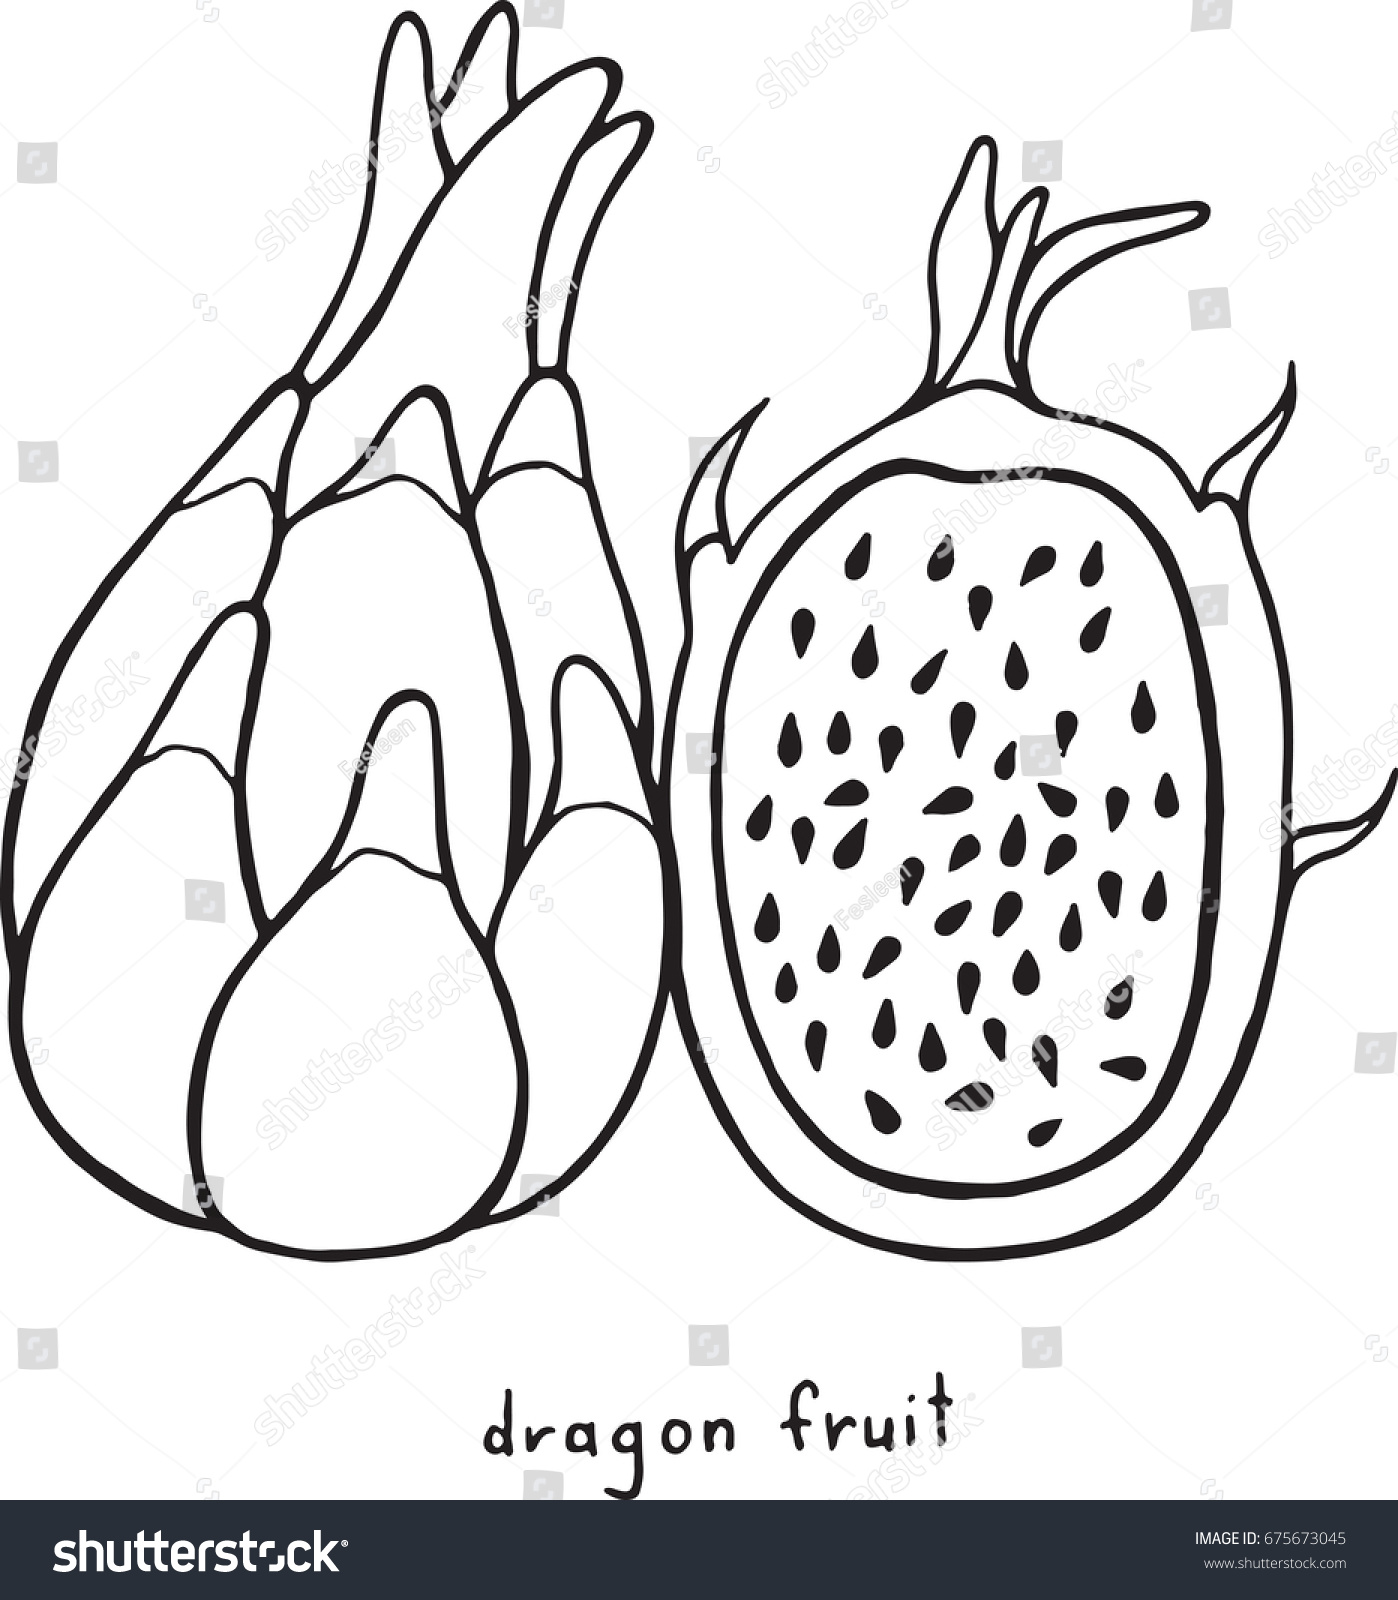 Dragon fruit coloring page graphic raster black and white art for coloring books for adults tropical and exotic fruit line illustration illustration